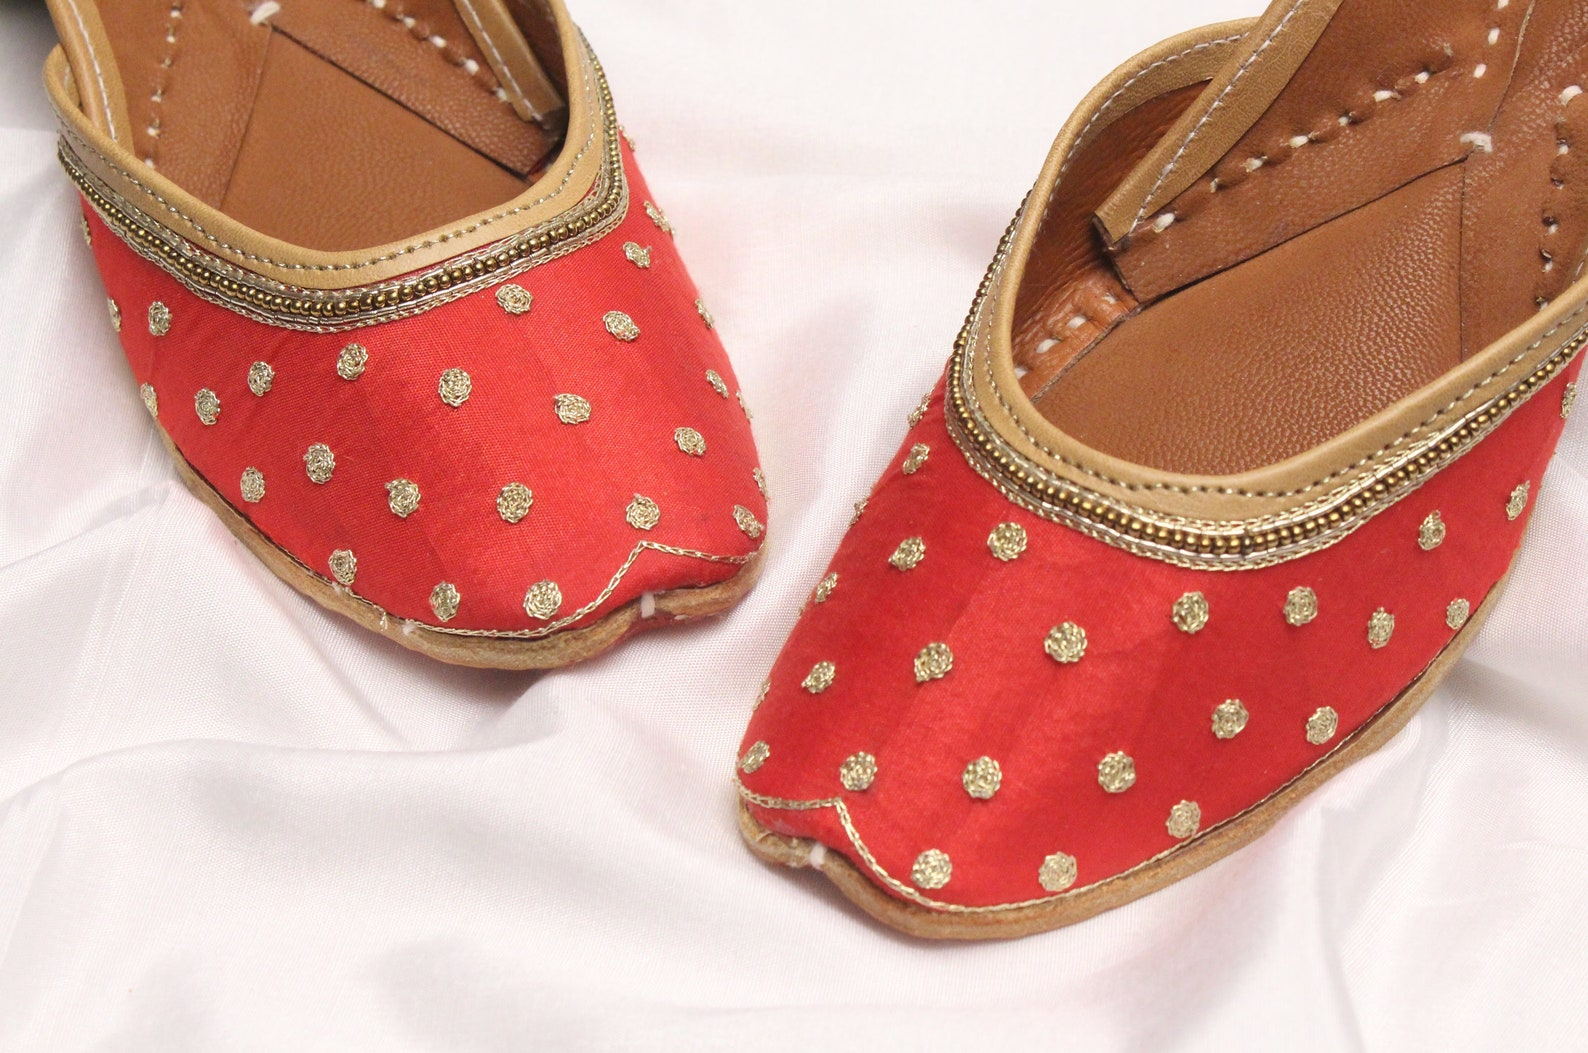 red gold shoes bridal wedding/women maroon red gold jutti shoes/indian wedding flats/ballet flats/khussa shoes/punjabi shoe us s